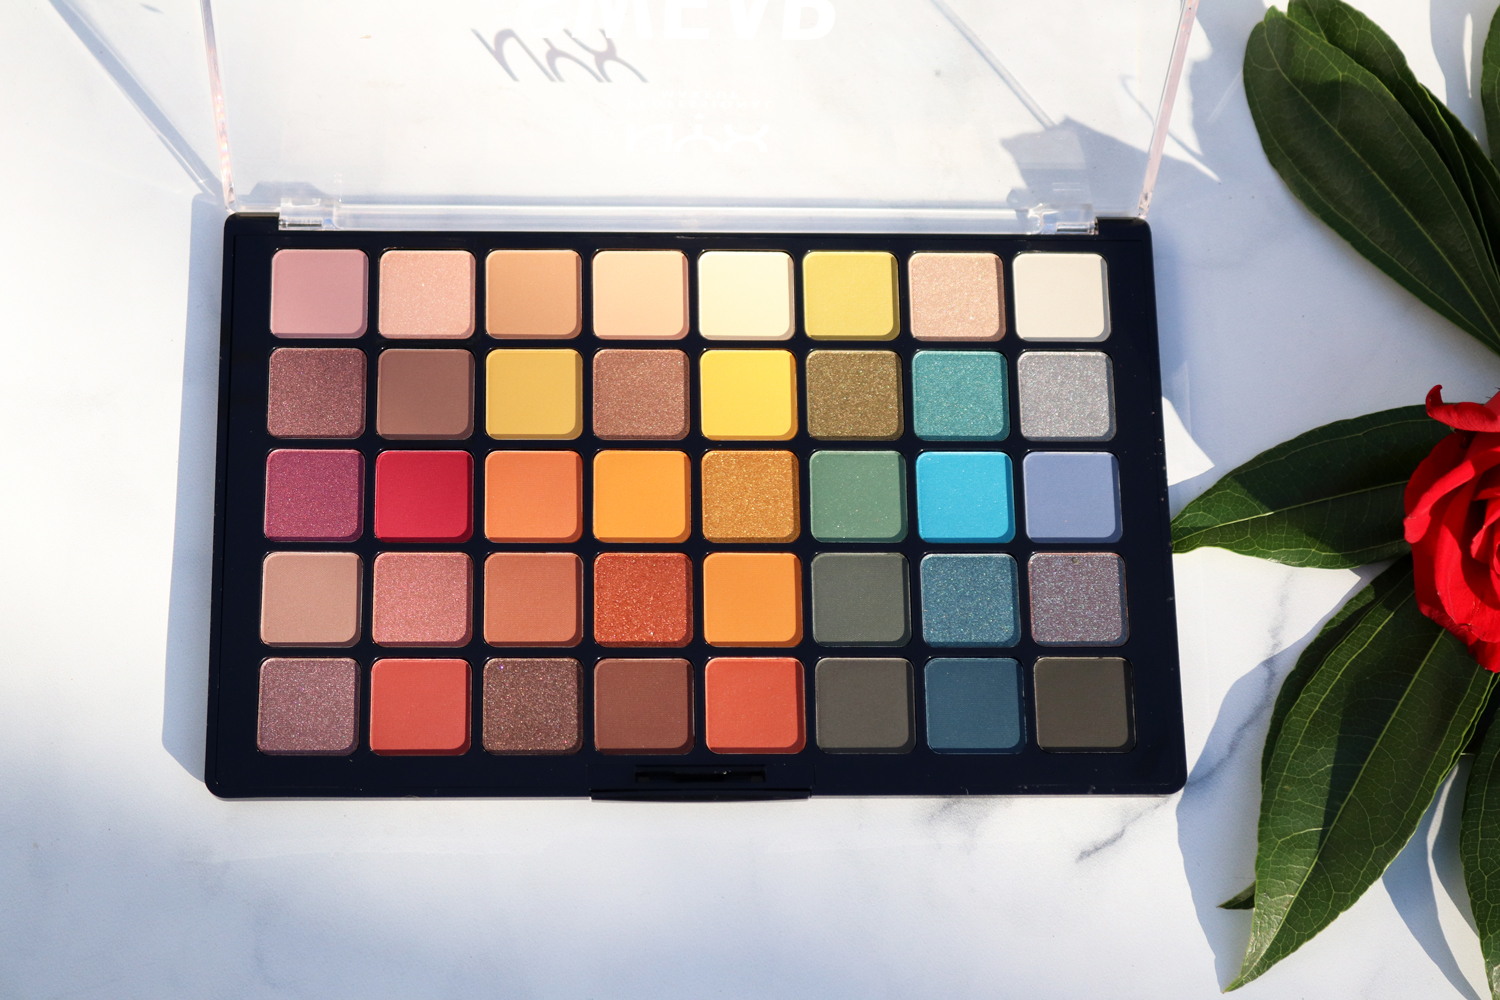 Paleta NYX Swear By It na eCosmetics